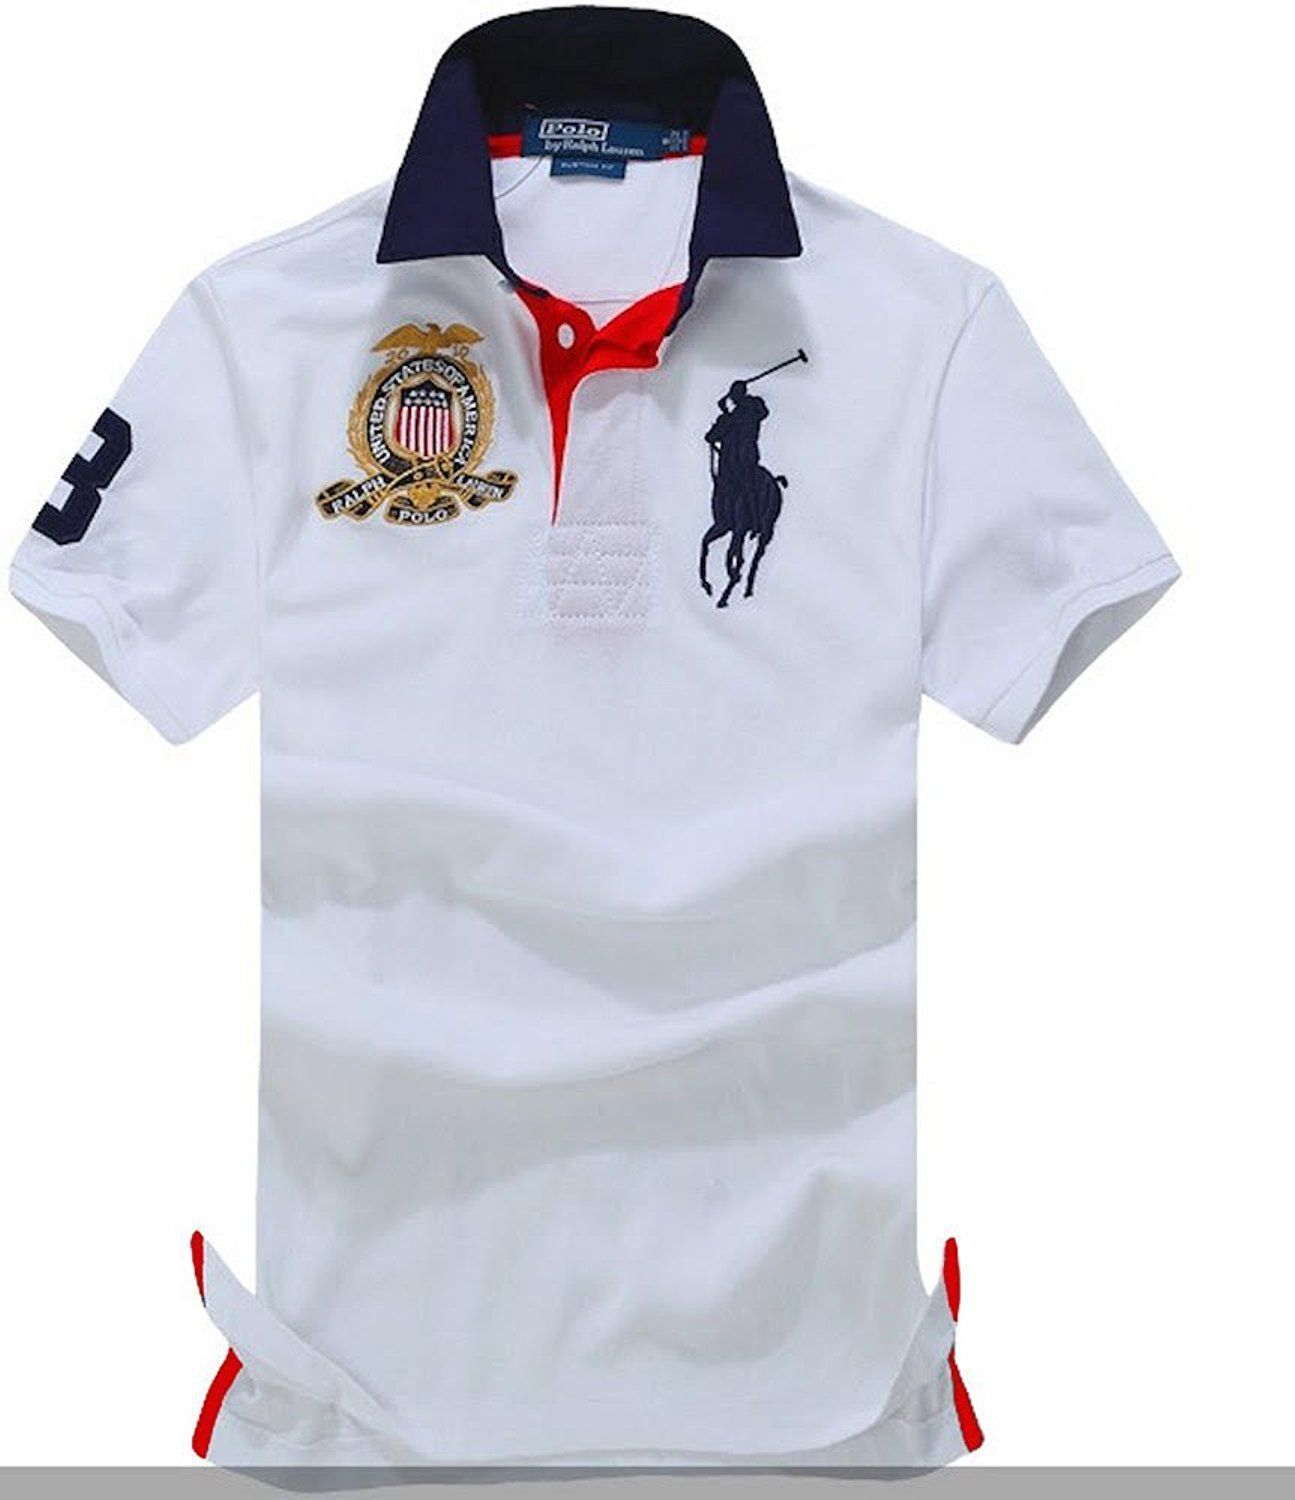 Polo Ralph Lauren Men S Lightweight Thin Mesh Usa Polo Team Custom Fit Shirt Ralph Lauren Mens Shirts Custom Polo Shirts Ralph Lauren Polo Shirts